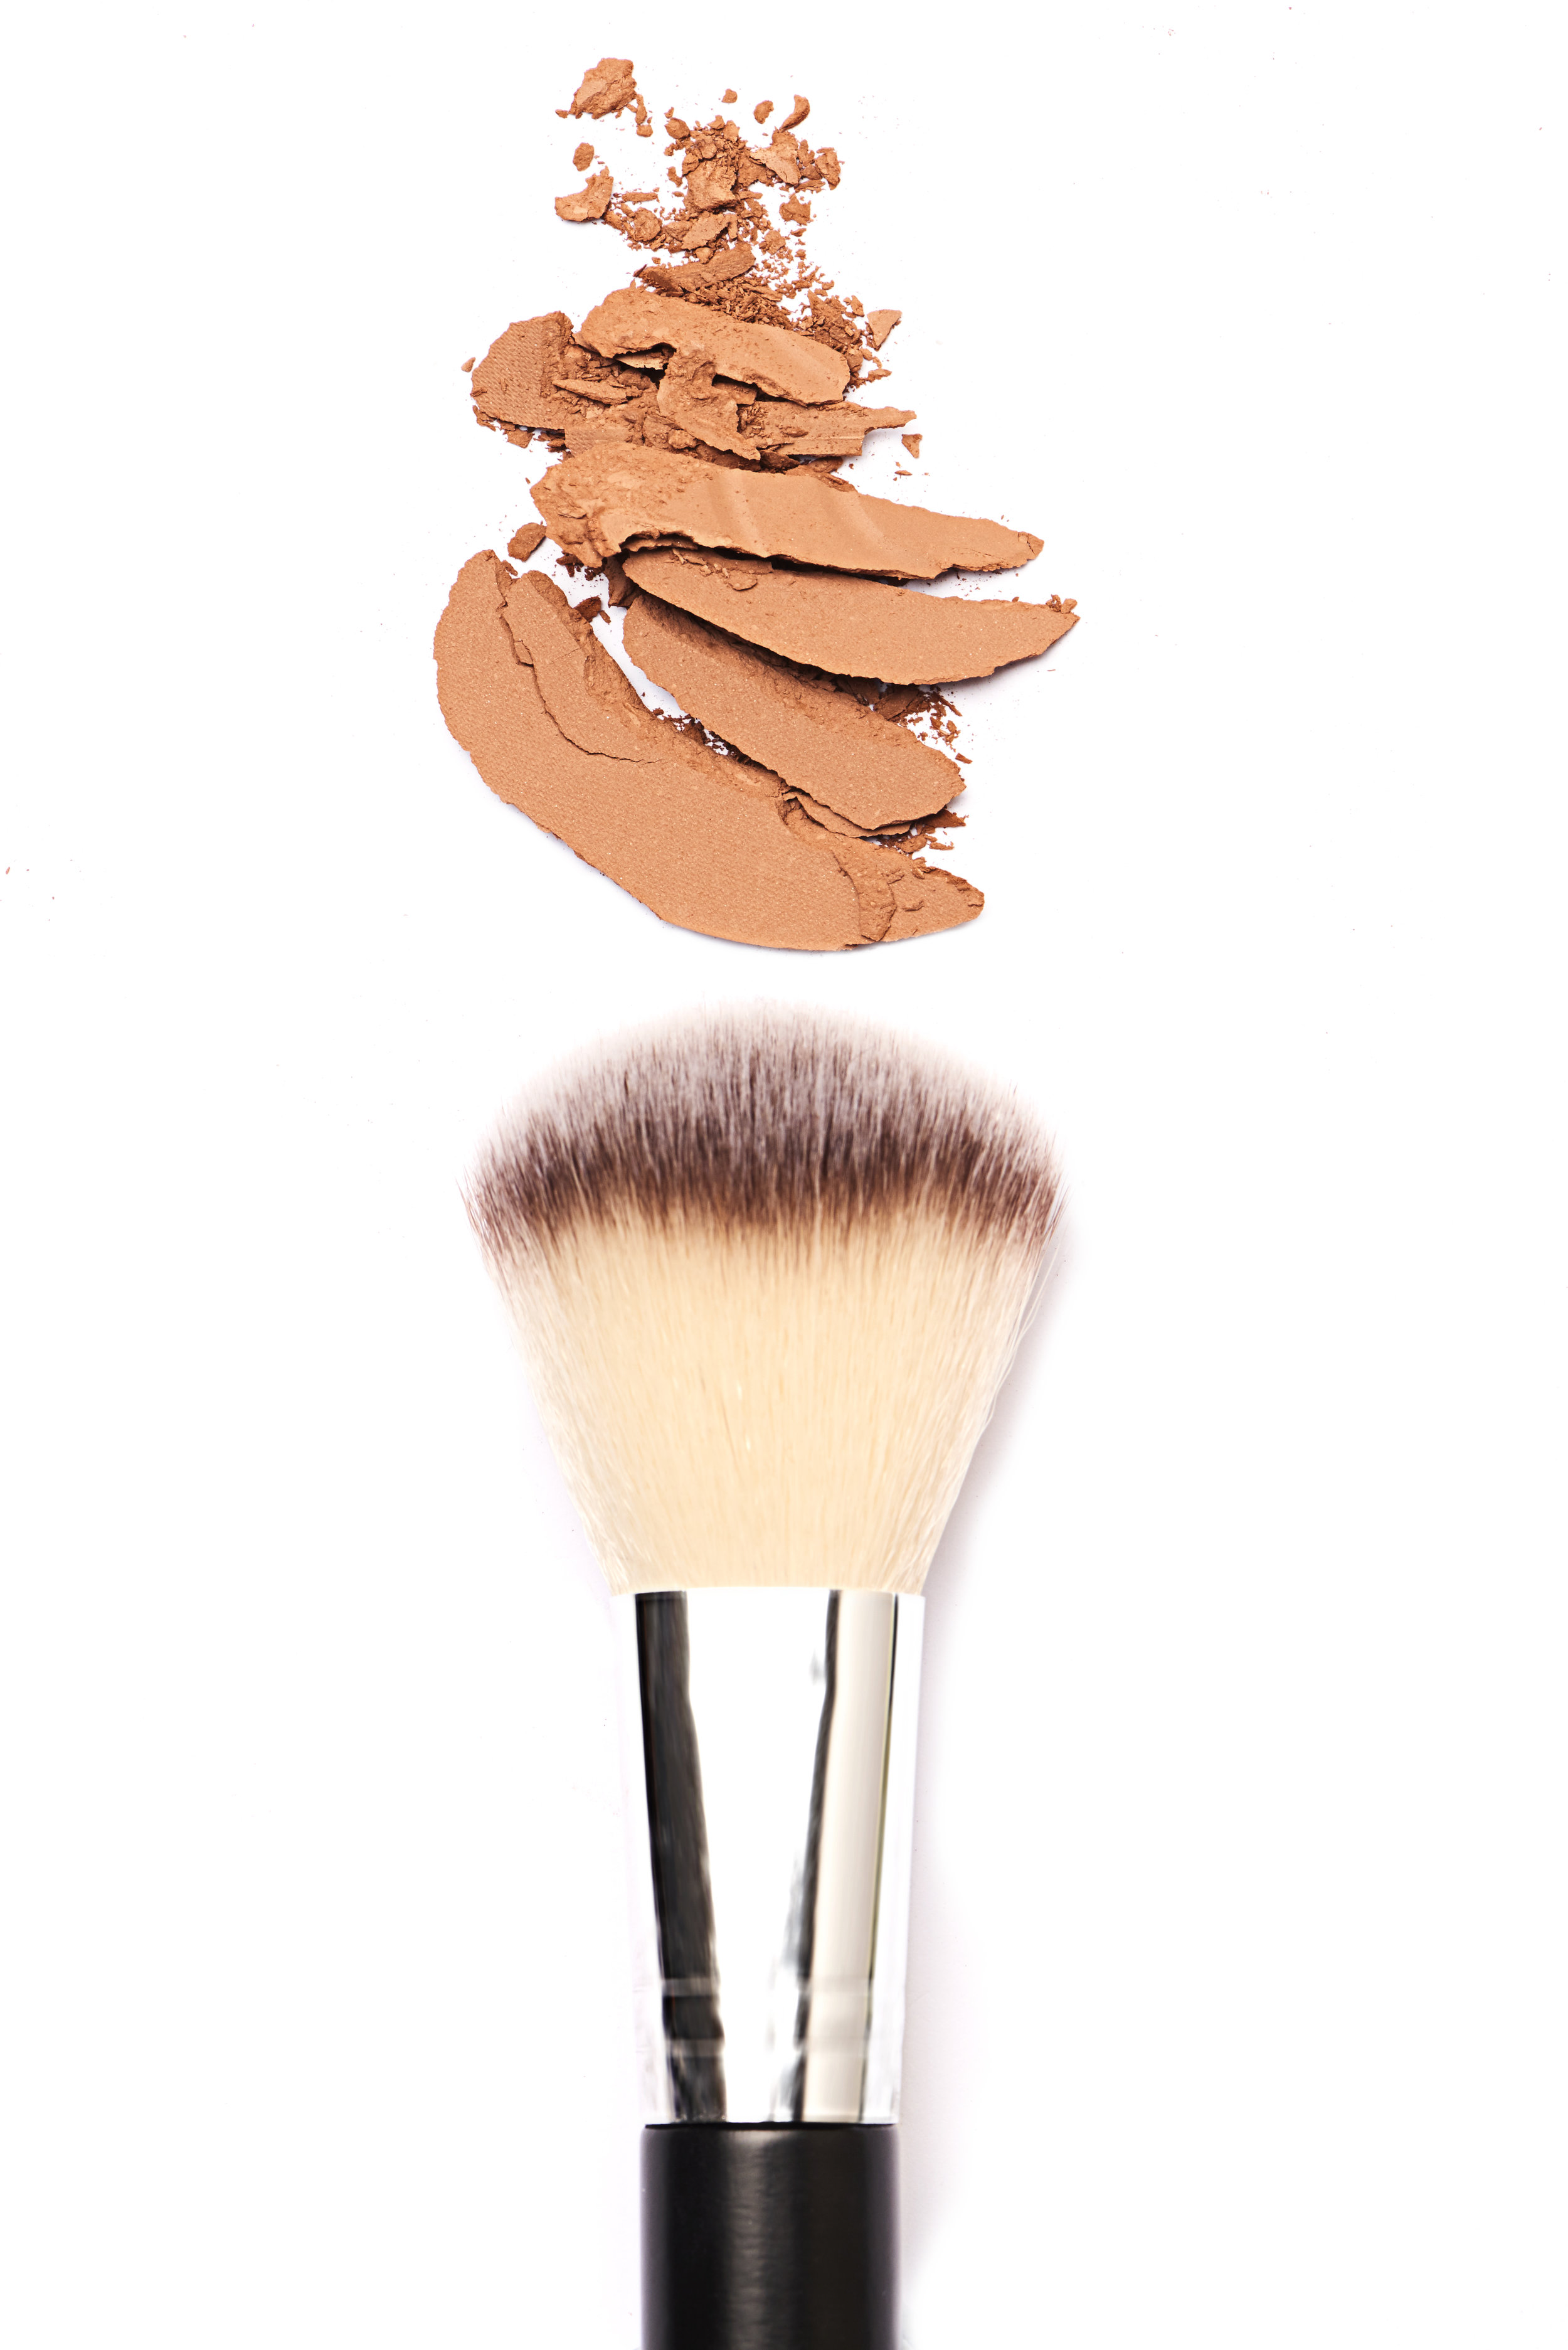 FABULOUS BRONZE BY LOOK FABULOUS FOREVER.